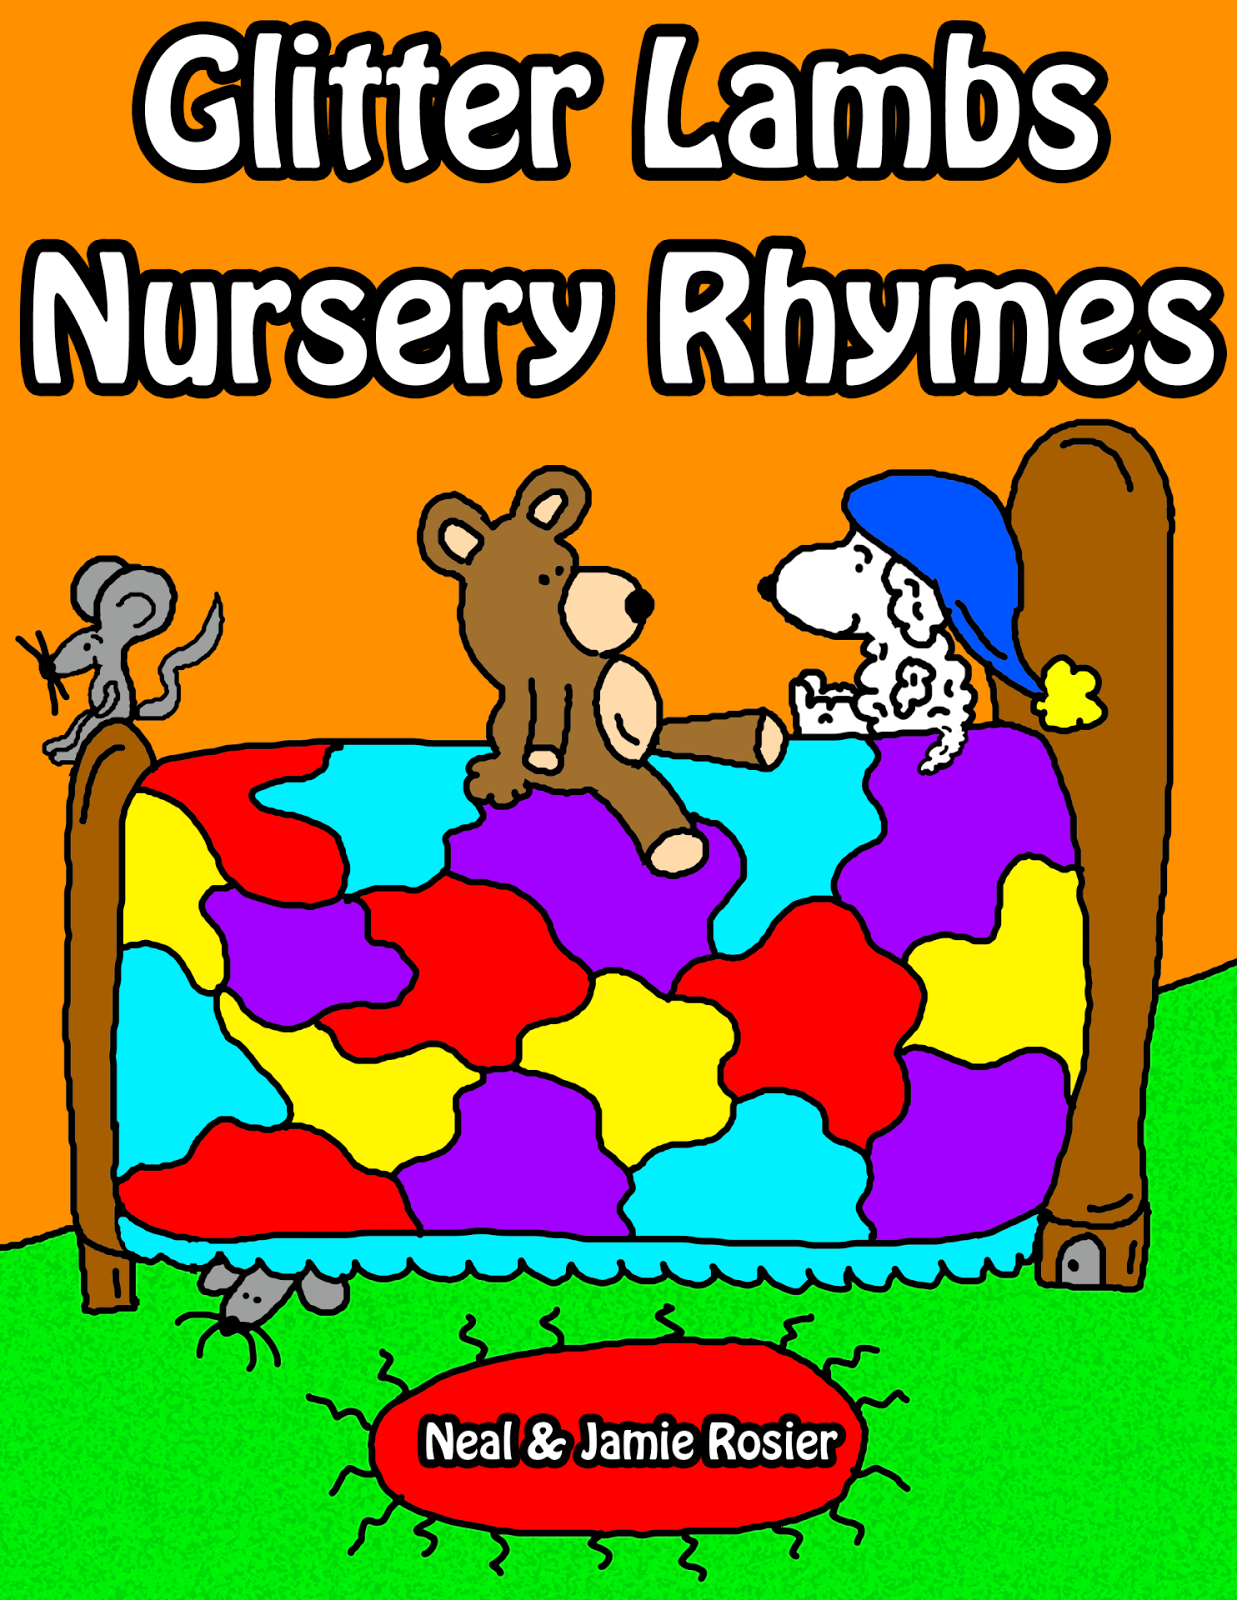 Glitter Lambs Nursery Rhymes Ebook For Kids Bedtime Stories With Poems and Cartoons